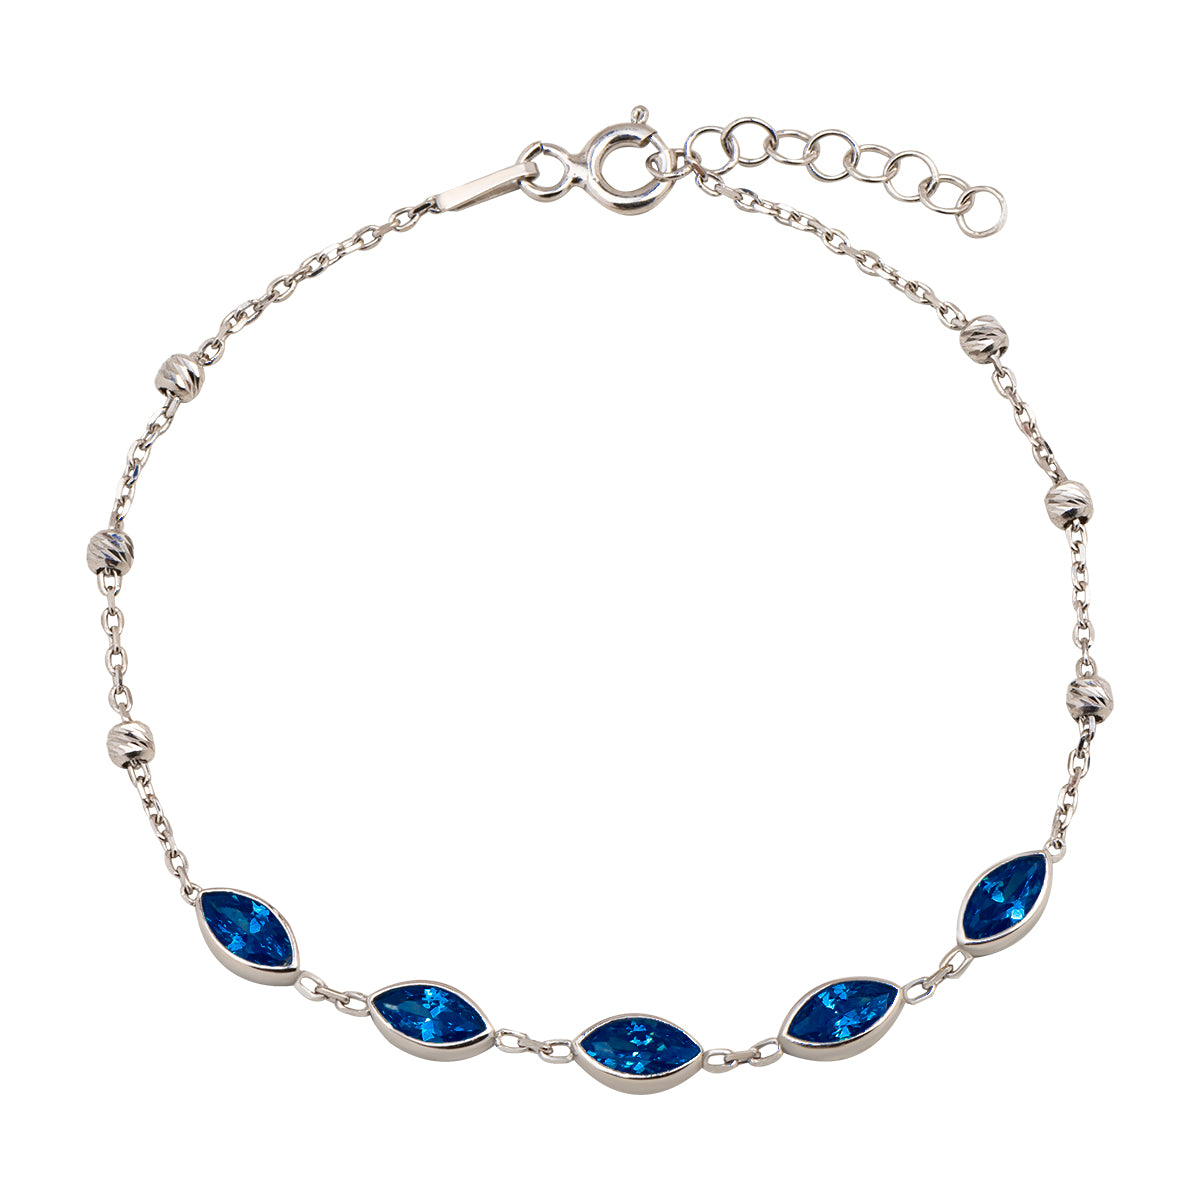 925 Sterling silver bracelet with almond shape beads with navy blue zirconia stones.